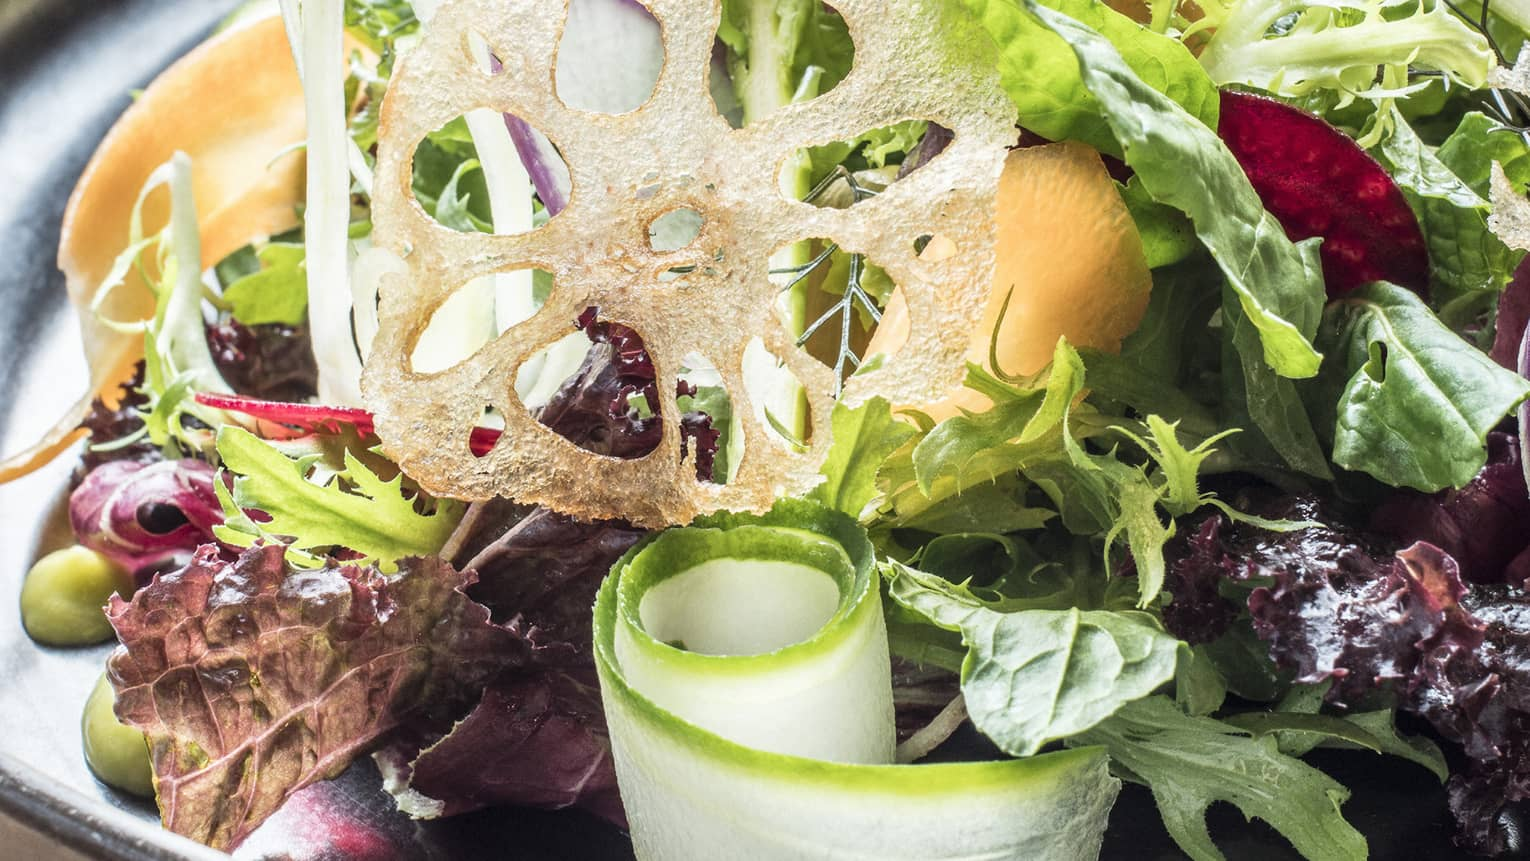 The signature organic salad with sweet and our avocado, organic vegetables, sherry vinaigrette and lotus root